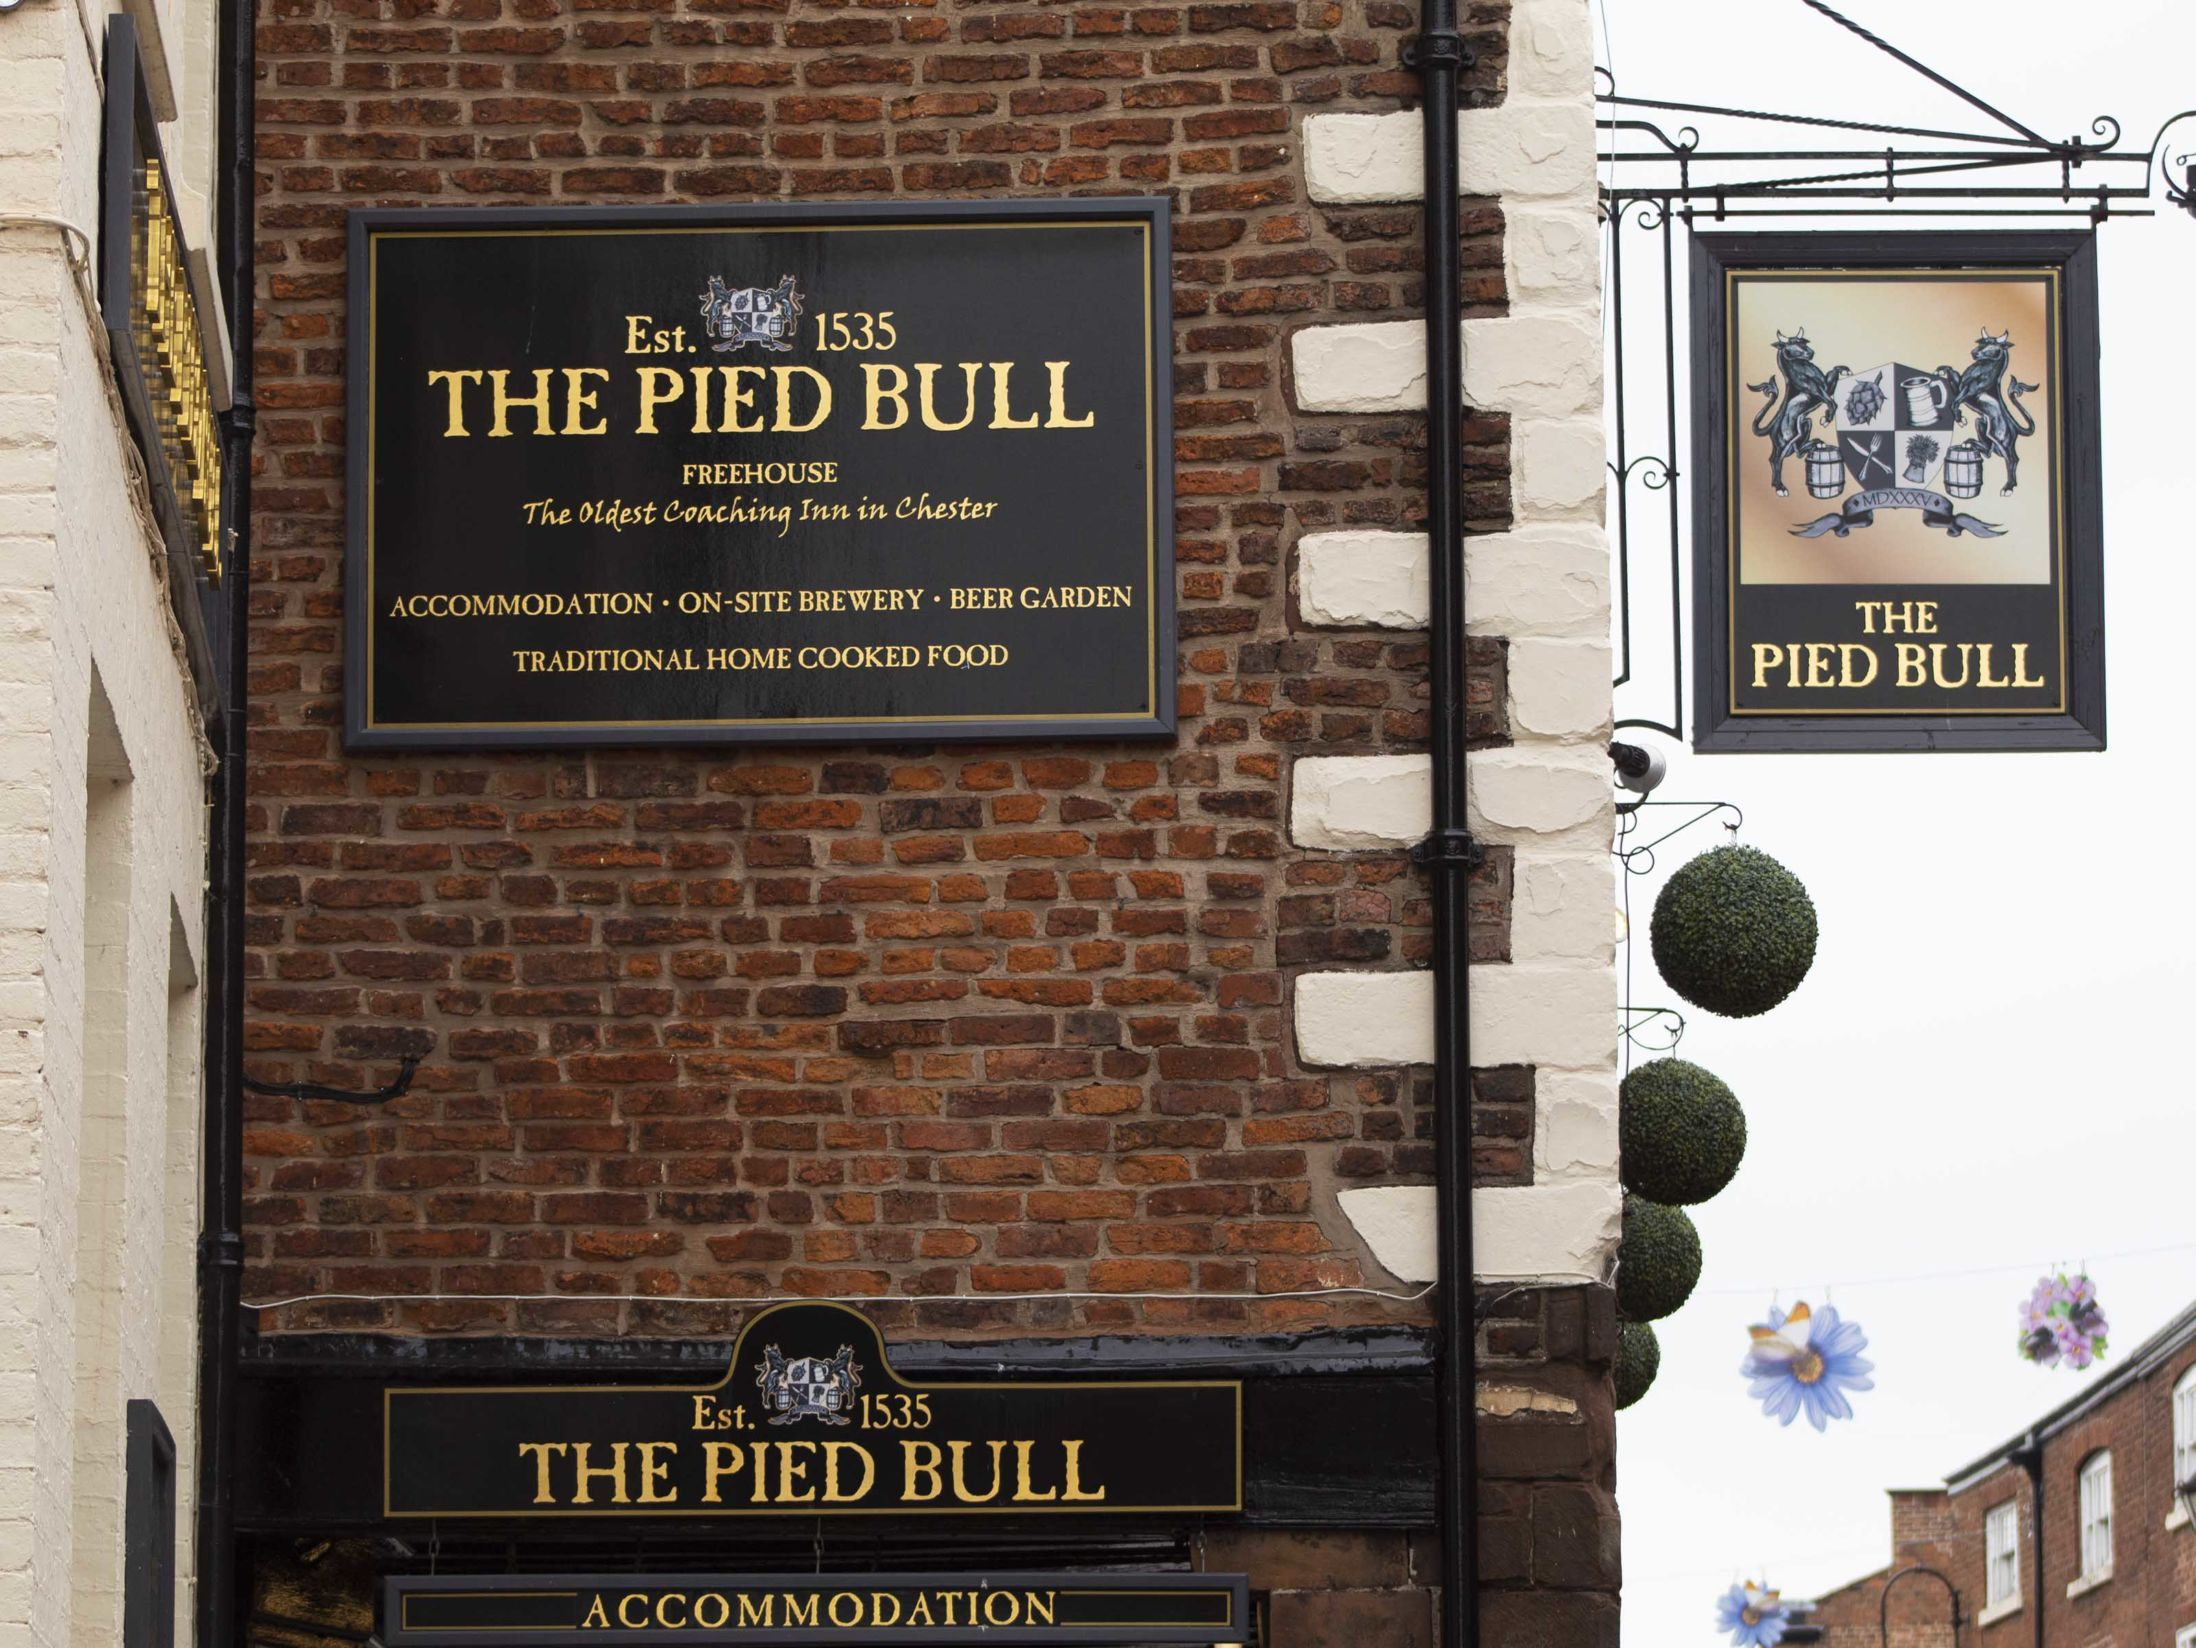 The Pied Bull - Real Ale Pubs in Chester